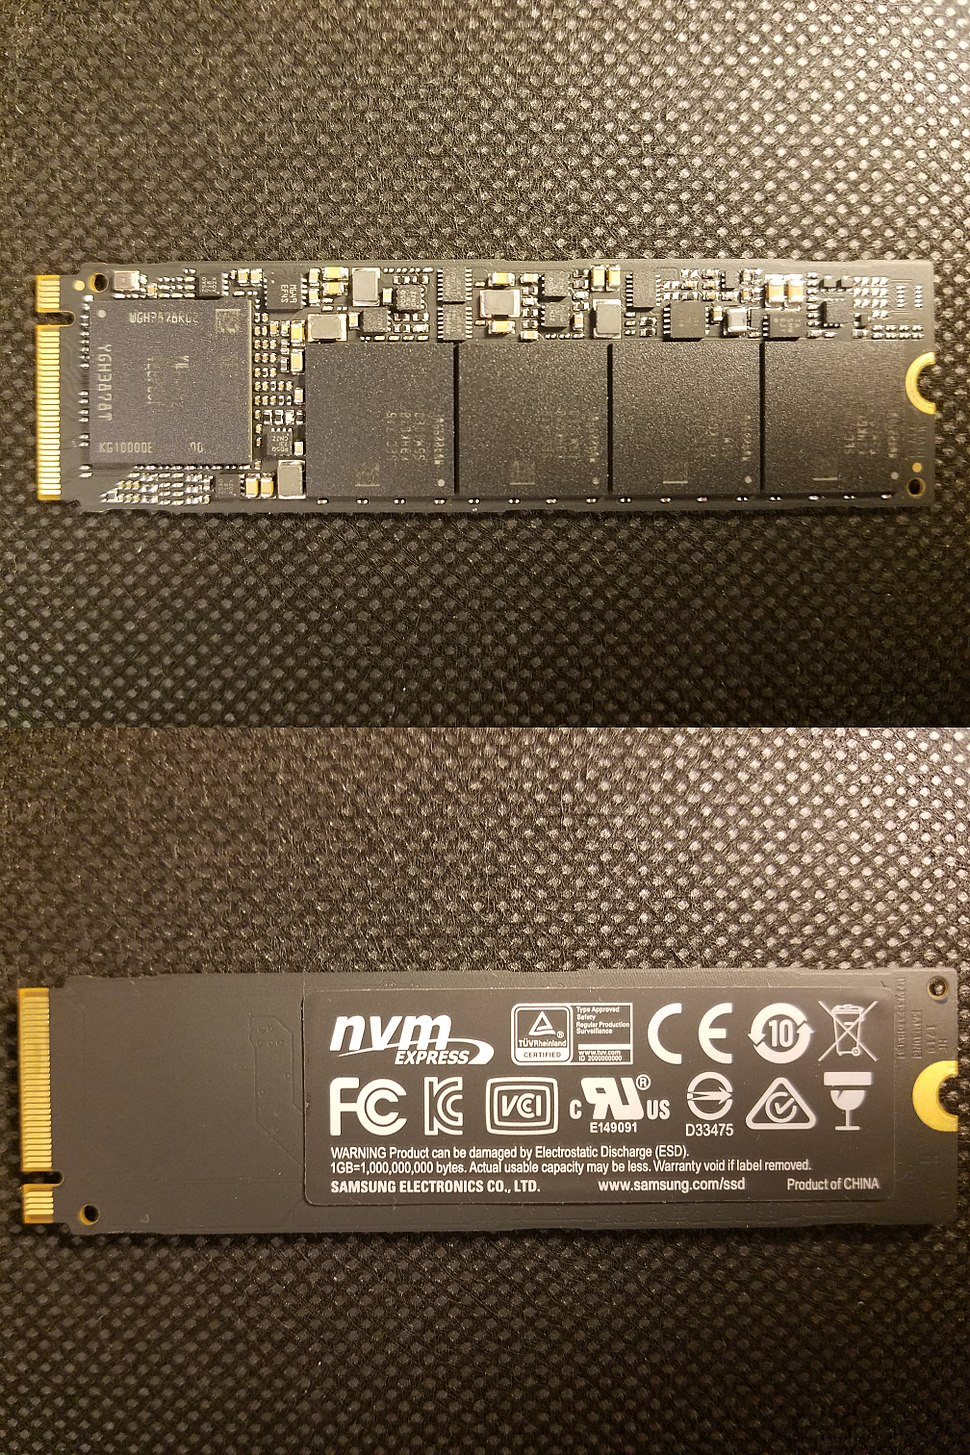 SSD Samsung 960 PRO 512GB - front and back - 2018-05-27